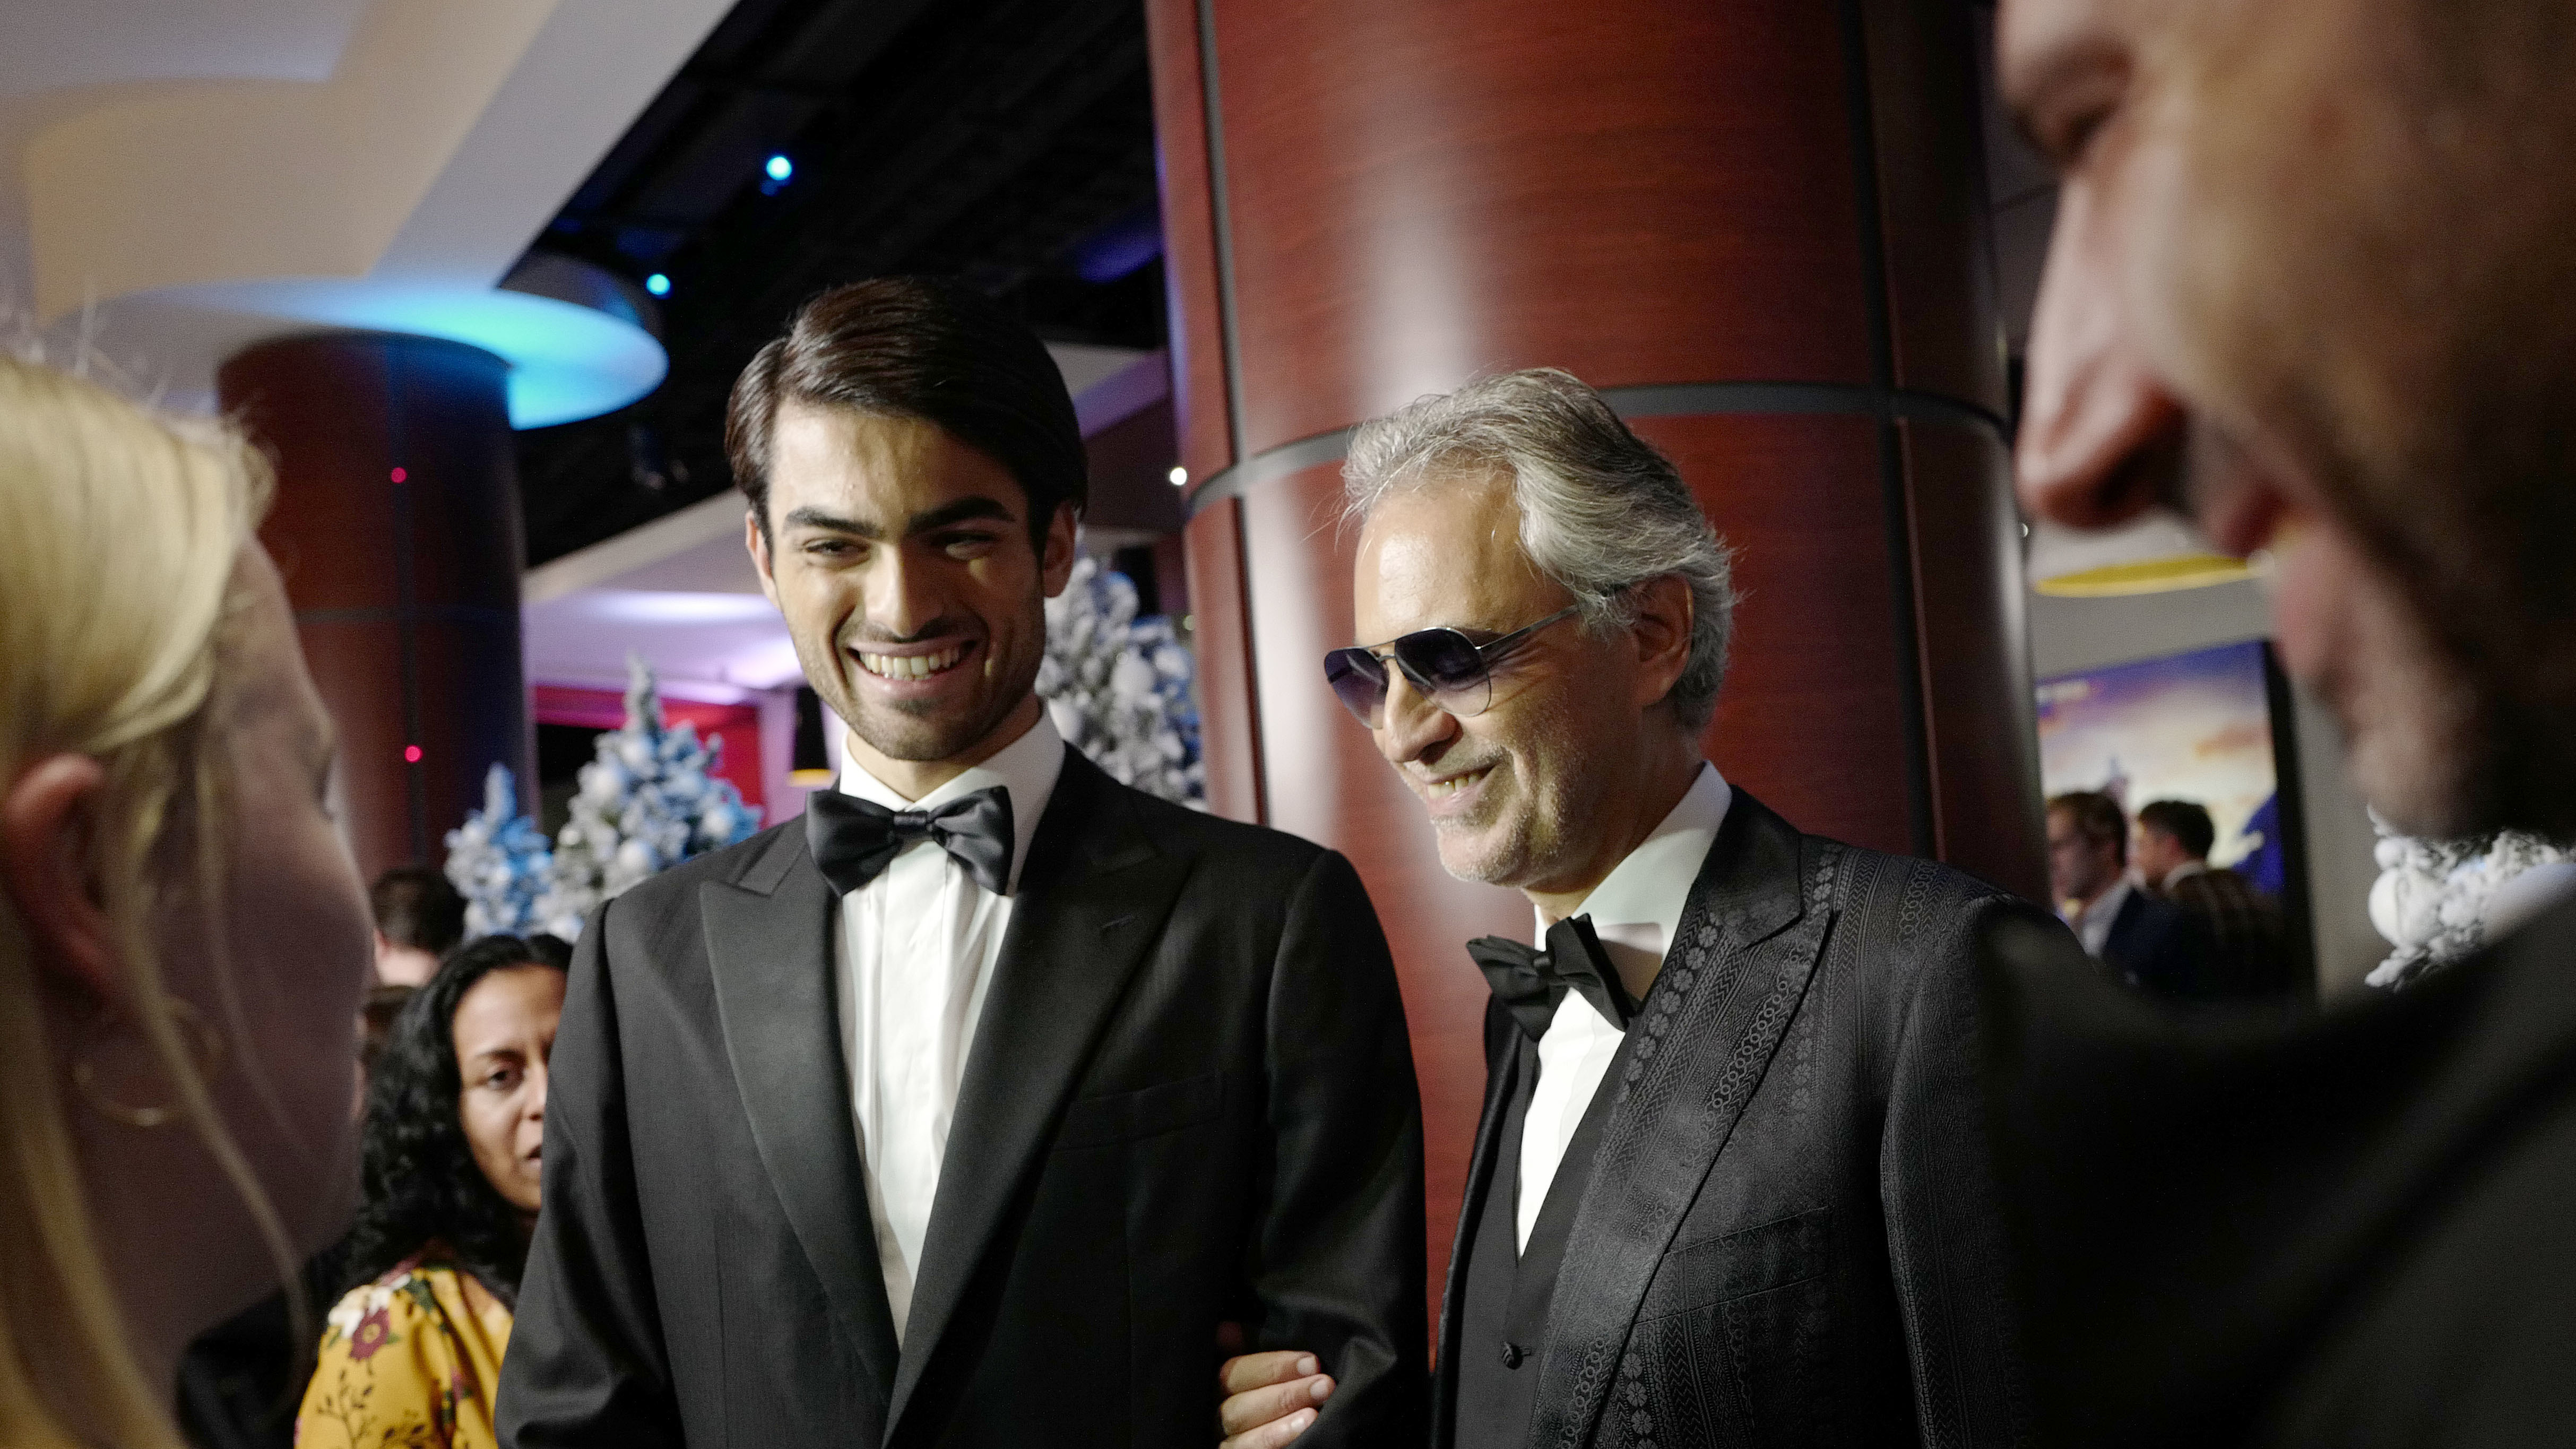 Andrea Bocelli Passes The Art Of Expressive Singing To His Son